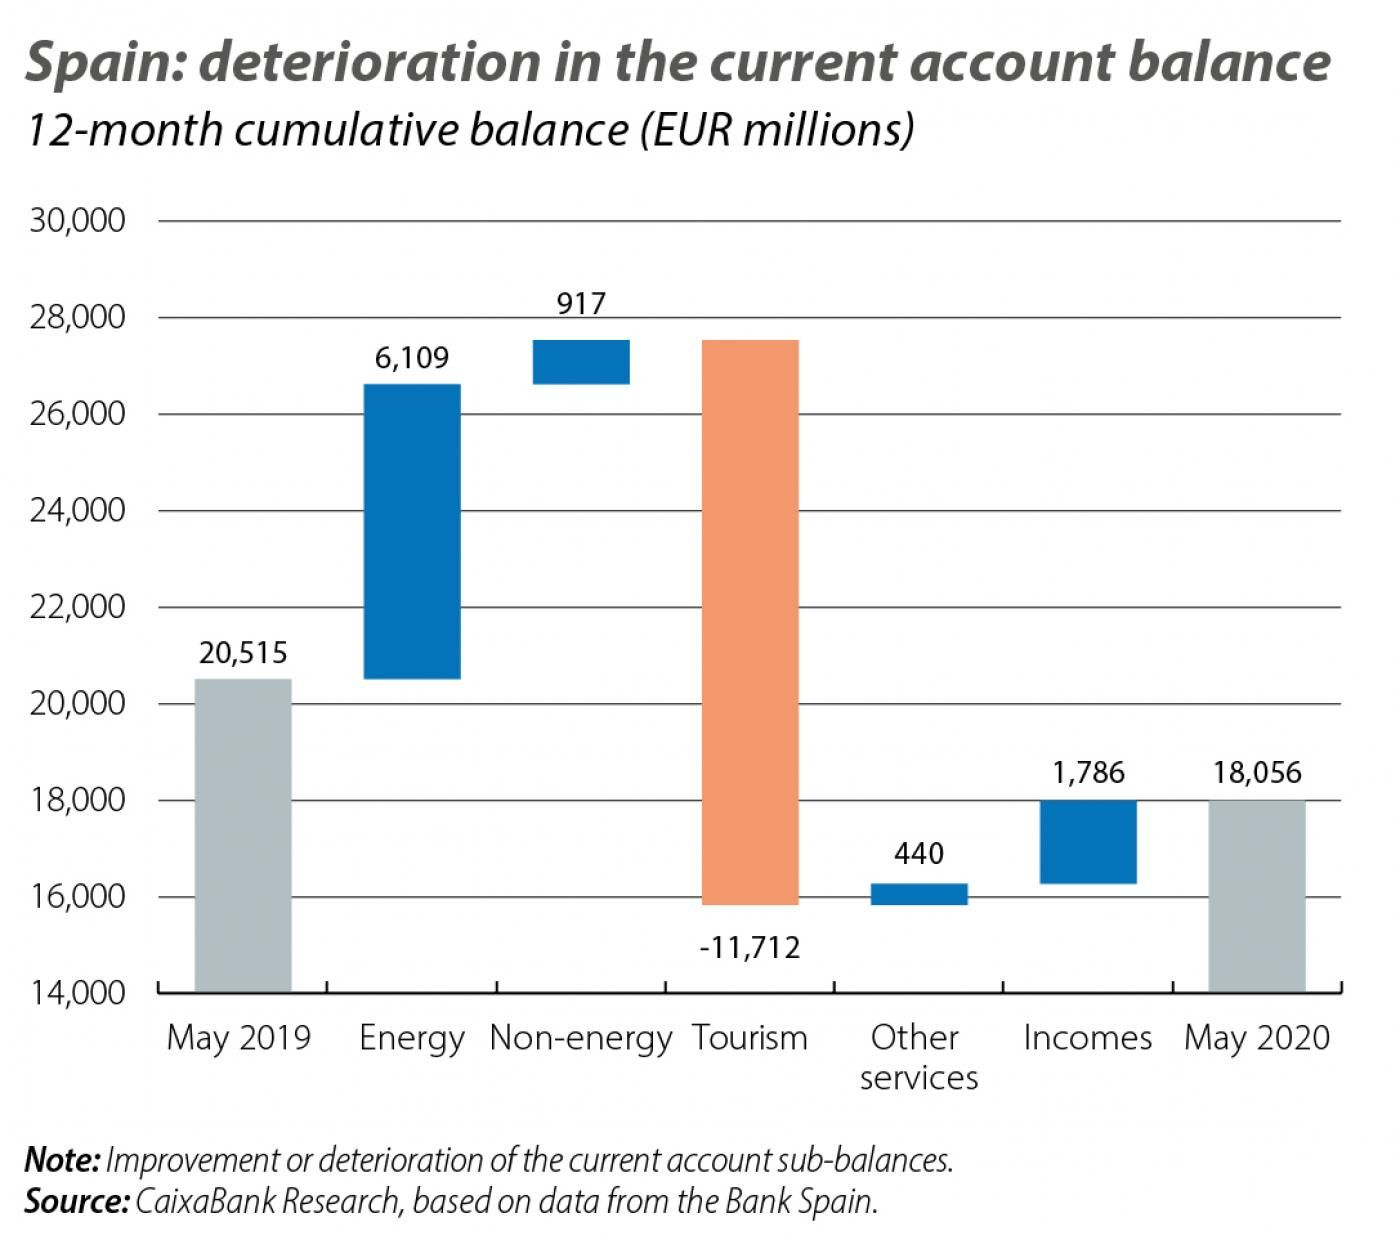 Spain: deterioration in the current account balance